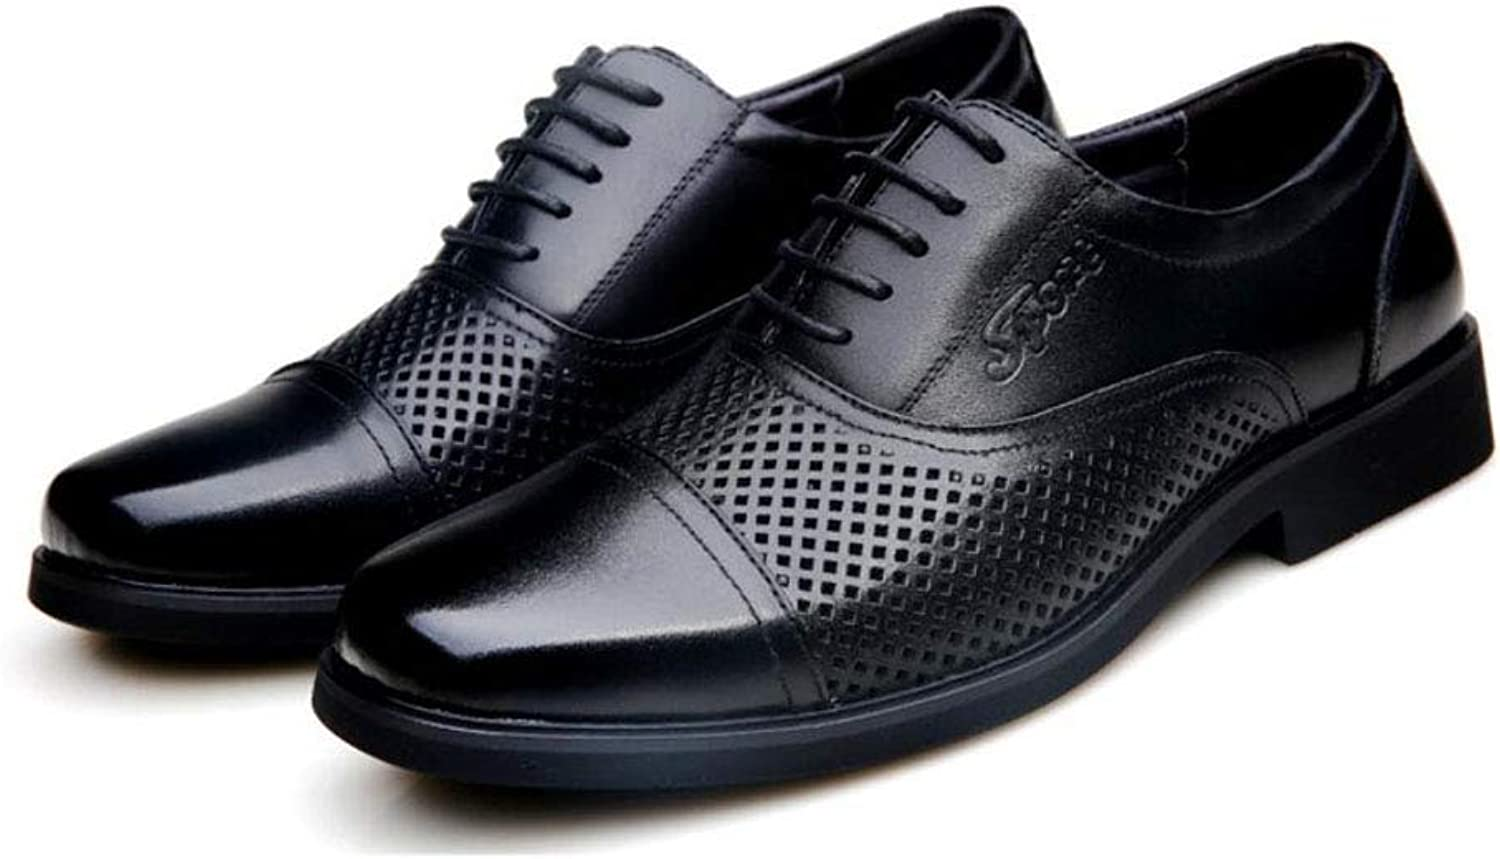 Y-H Men's Casual shoes,Leather Spring summer Hollow-out Driving shoes, Breathable Lace Up Formal Business shoes Office & Career Party & Evening